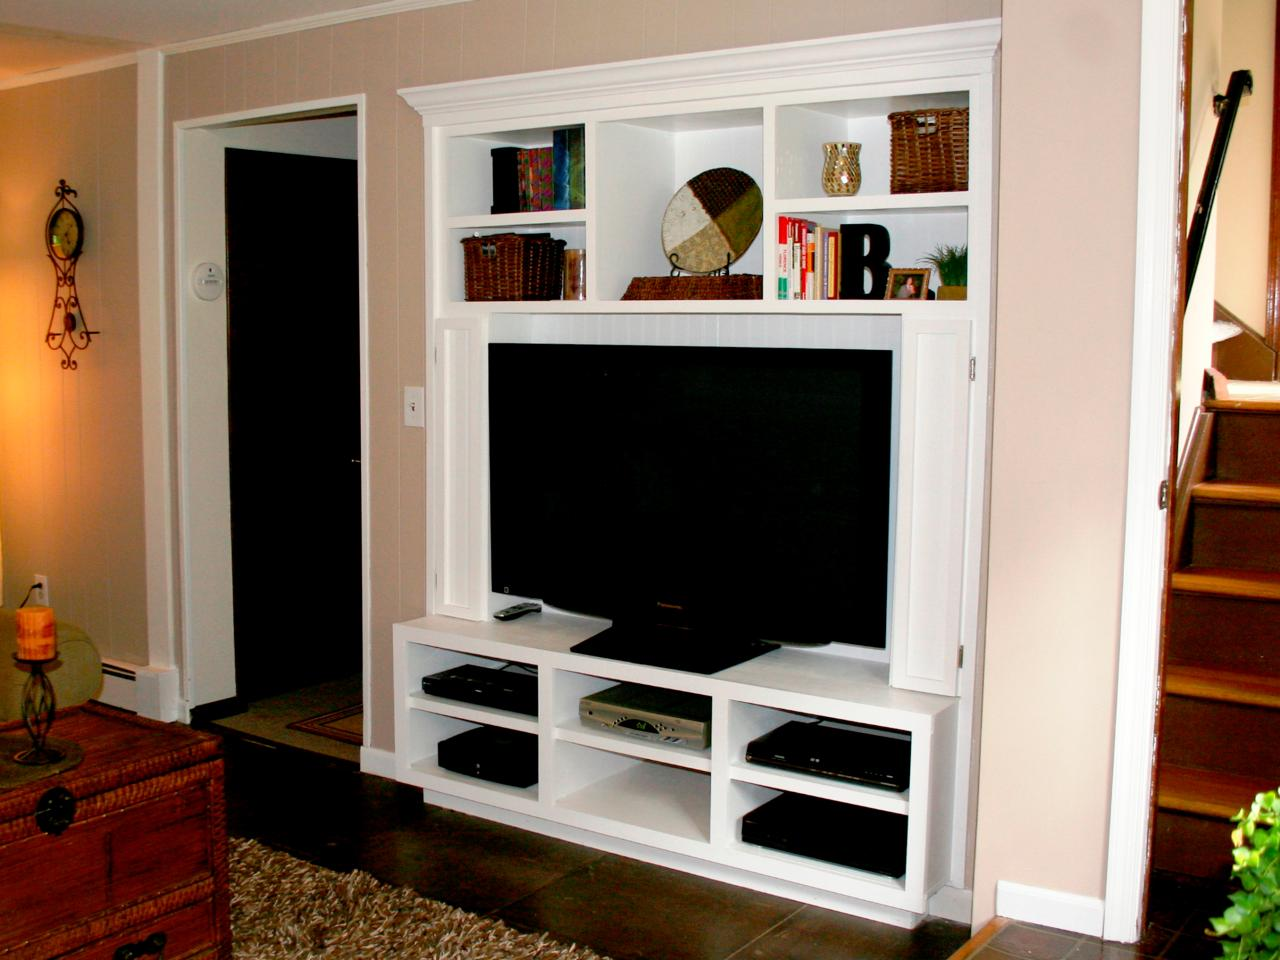 Turn a closet into a built in entertainment center hgtv for Gun room design ideas for houses